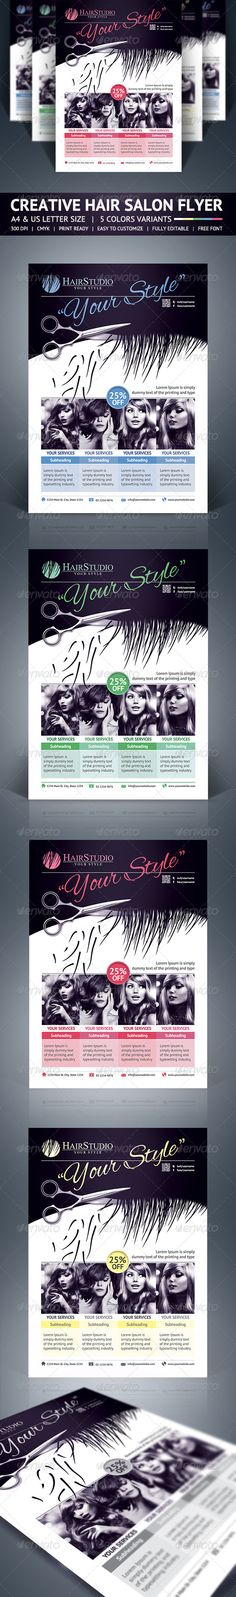 City Hair Salon Promotional Flyer Promotional flyers, Print - hair salon flyer template